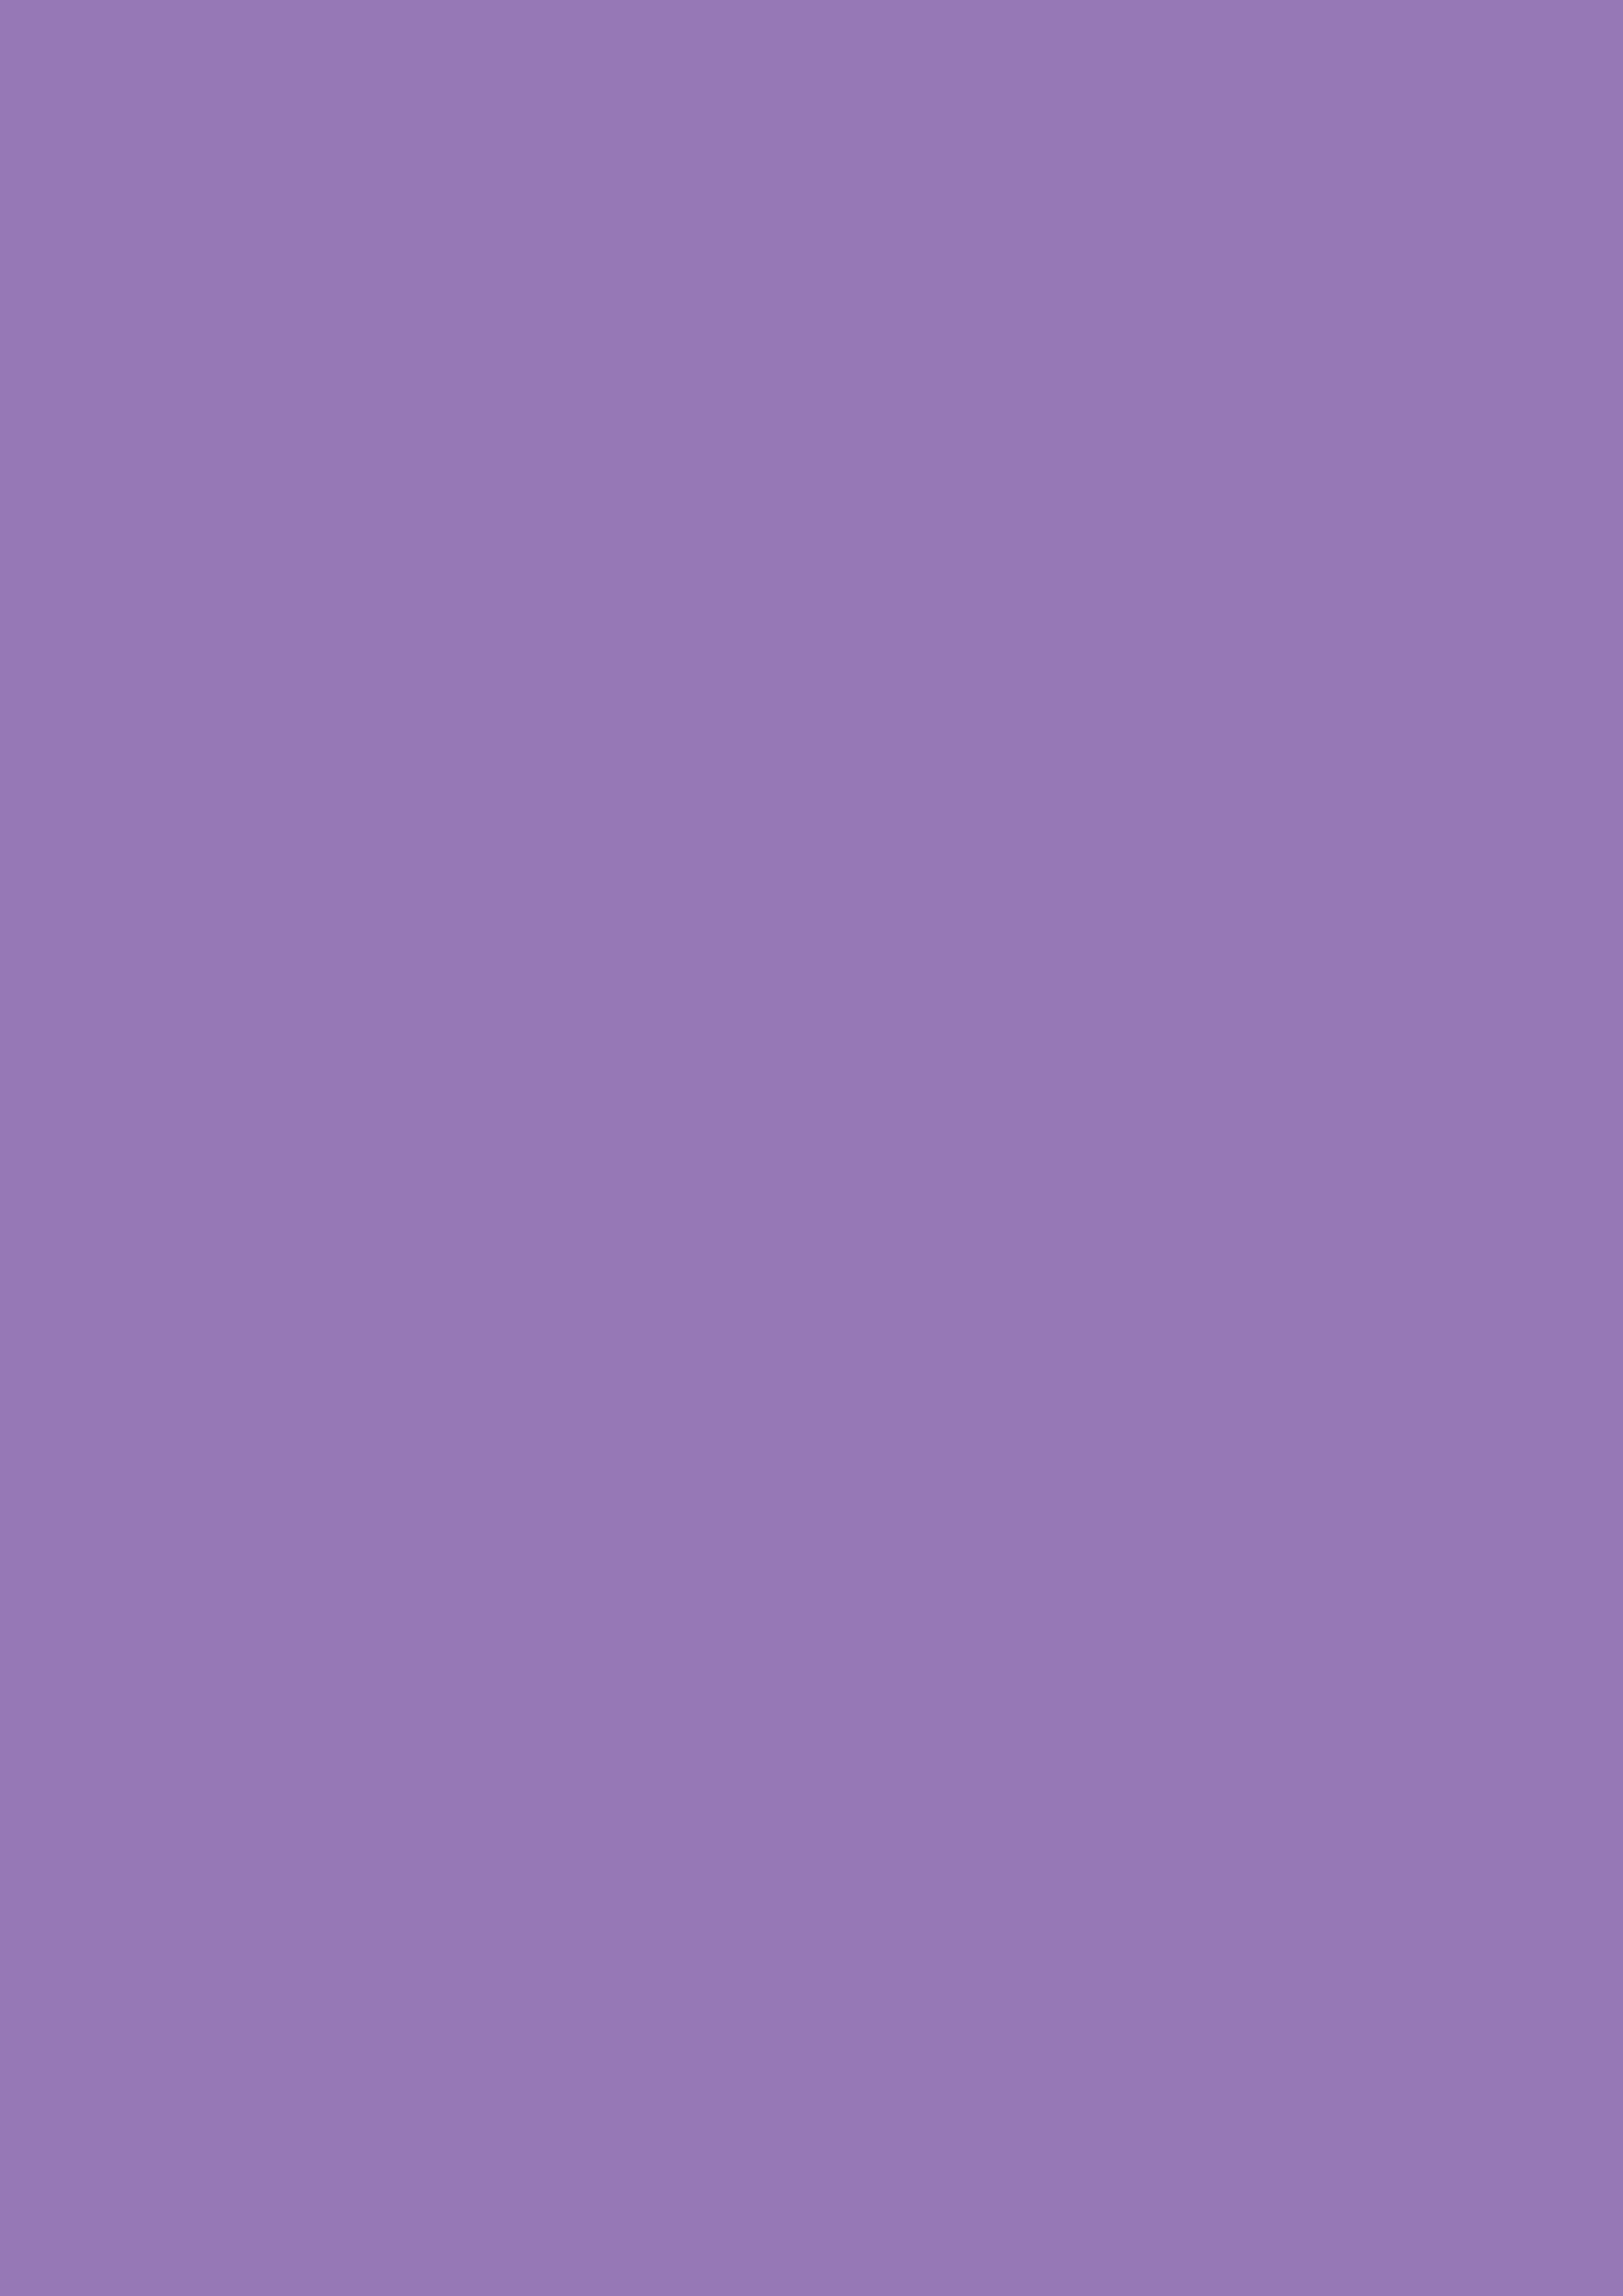 2480x3508 Purple Mountain Majesty Solid Color Background